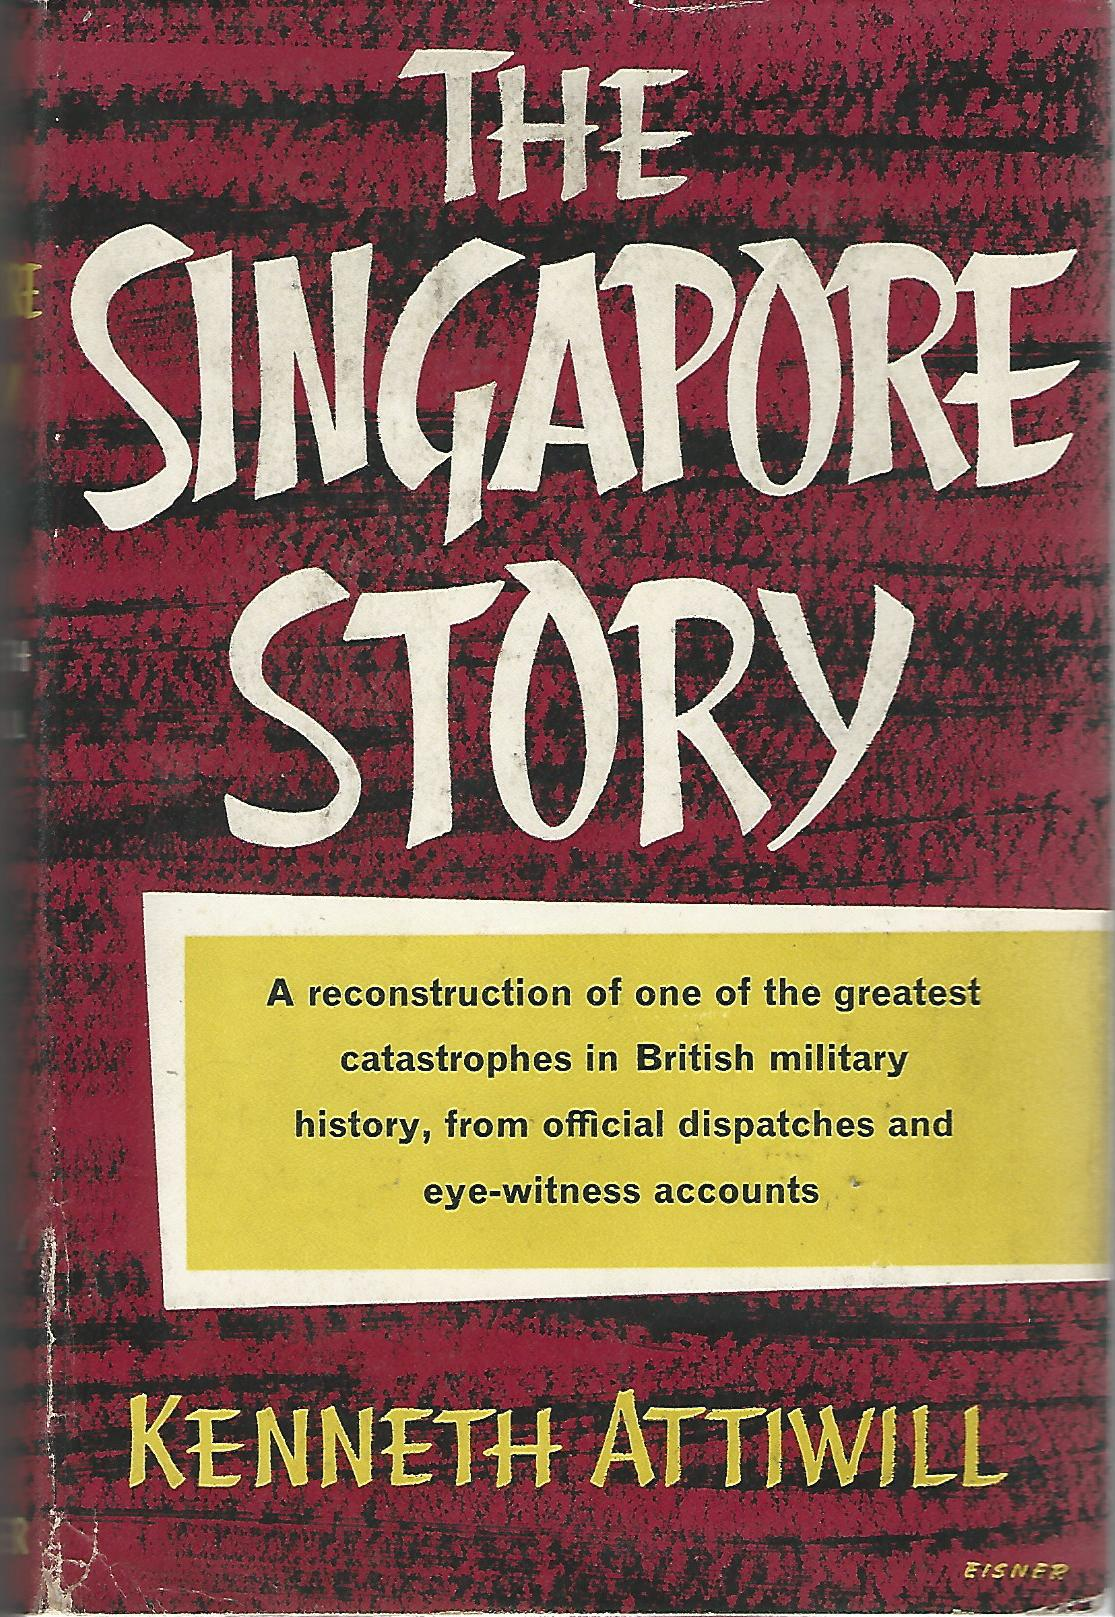 Image for The Singapore Story: A Reconstruction of one of the Greatest Catastrophes in British Military History, from Official Dispatches and Eye-Witness Accounts.